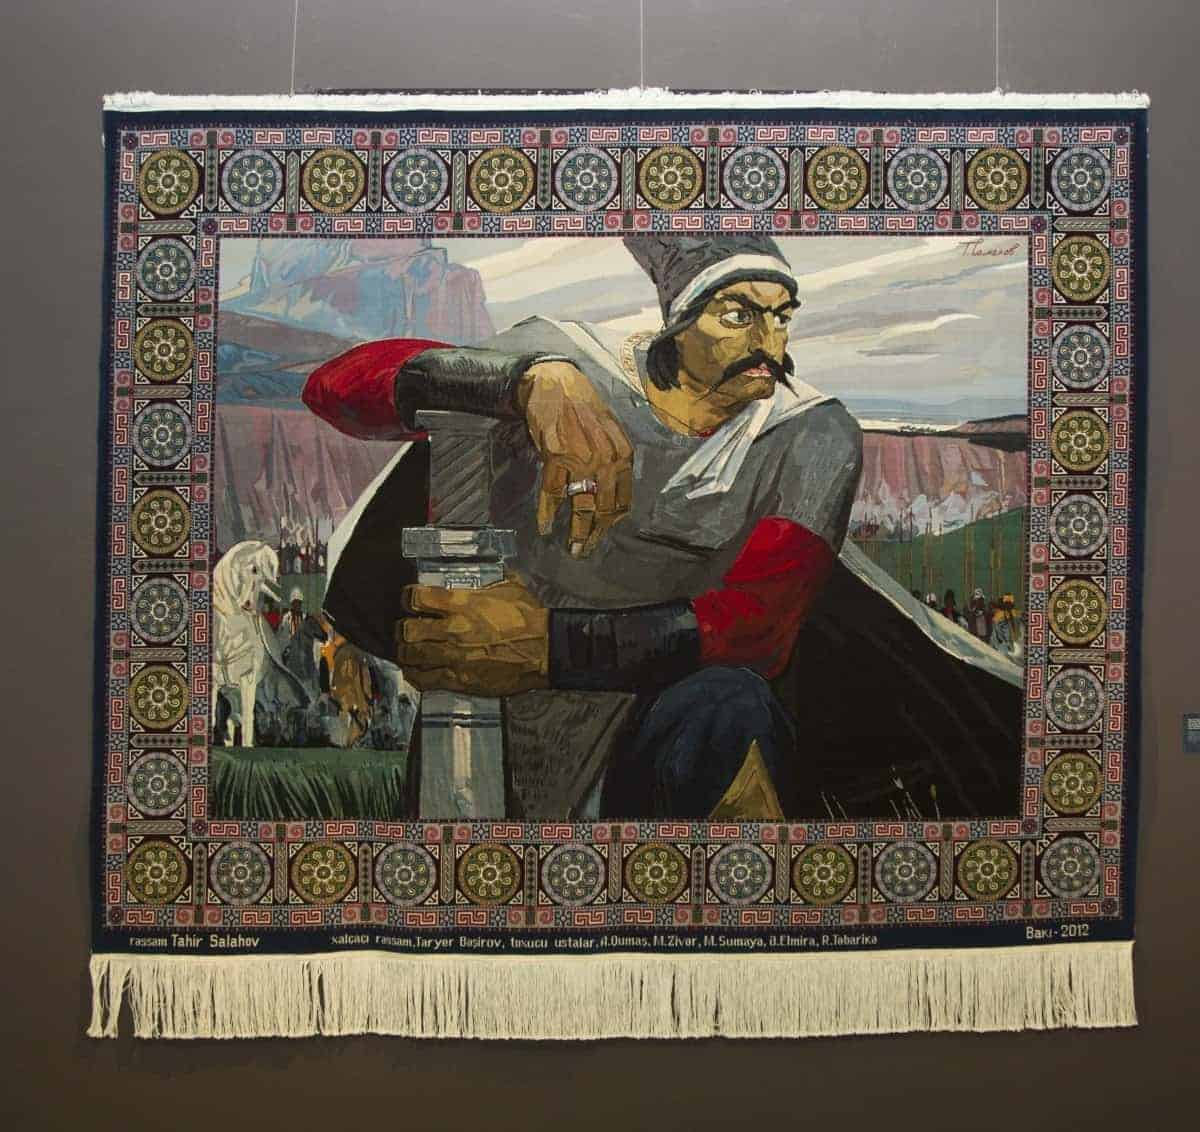 Carpet Koroghlu. Azerbaijan. 2012. Wool, cotton. Pile, handmade. 255x204 cm. It was woven on the base of Tahir Salakhov's painting. Sketch author: T.Bashirov